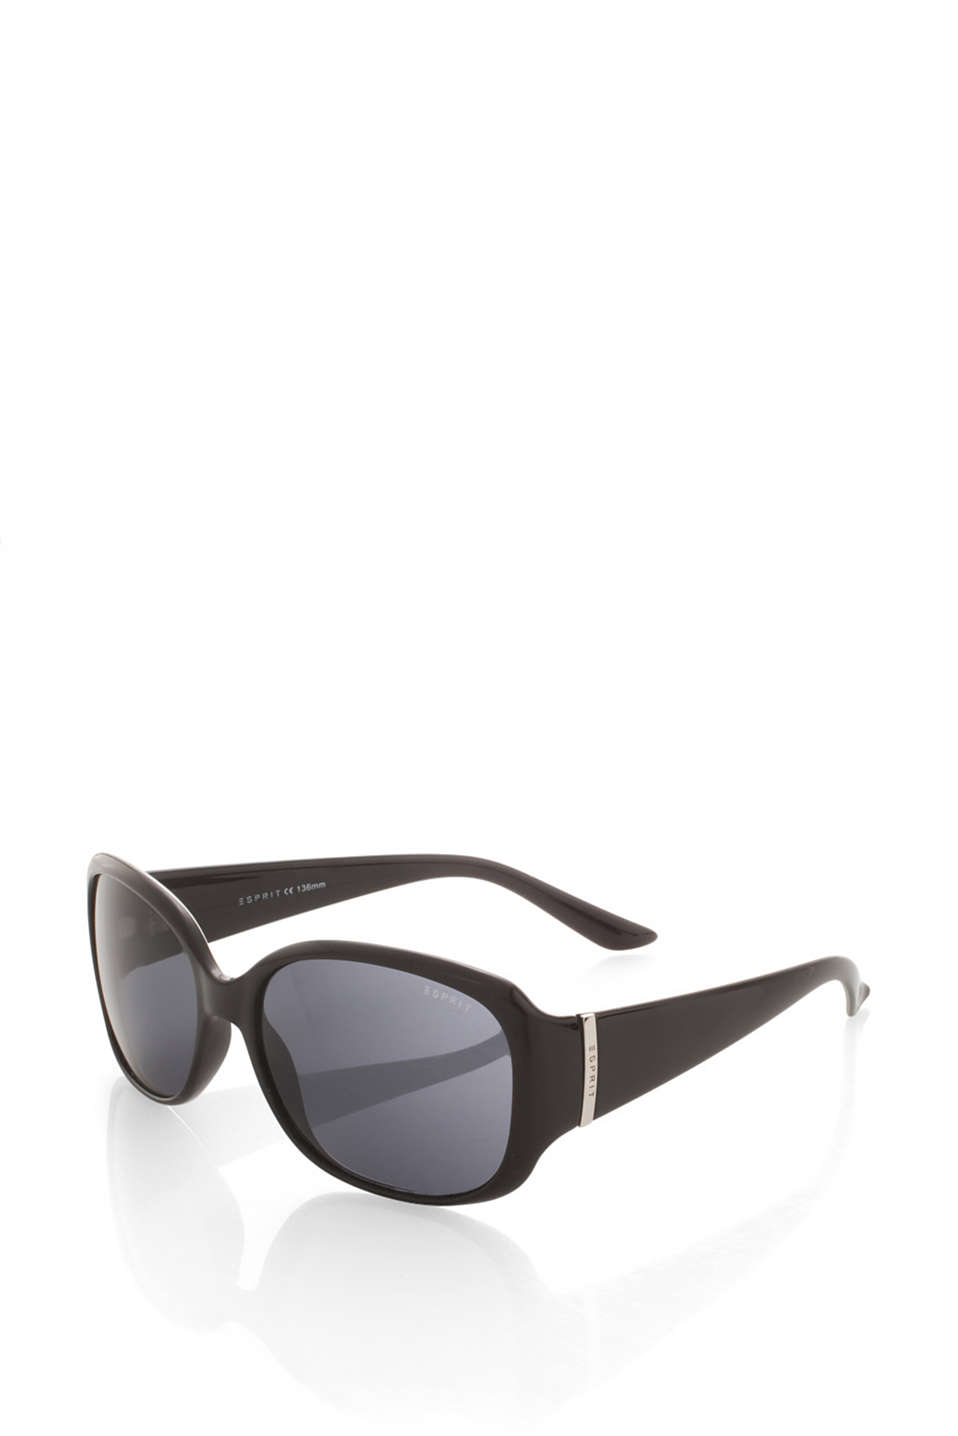 Sunglasses in a classic design in a plain-coloured design or with a floral pattern